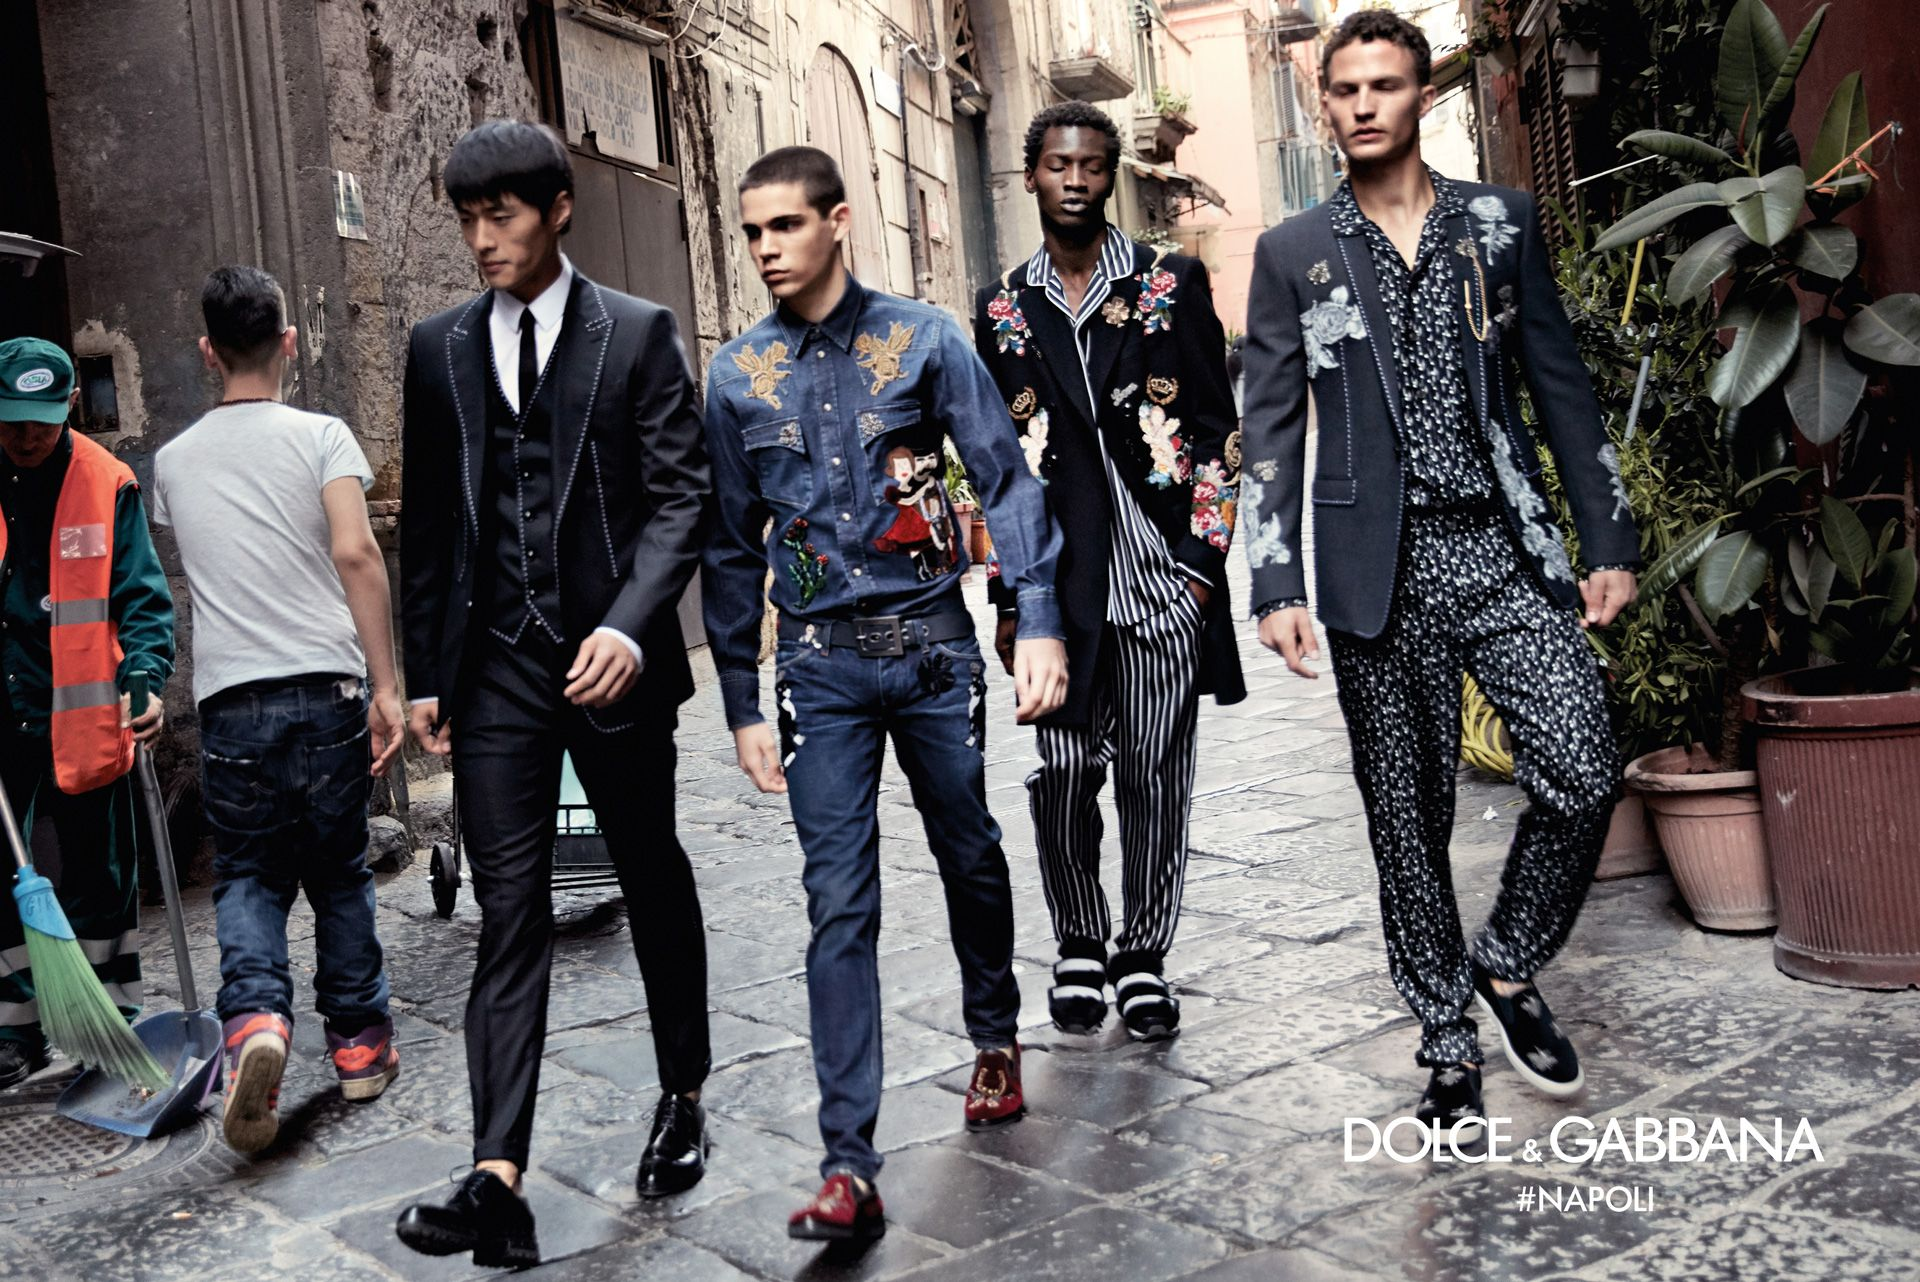 7acac164 See the images and find out about the inspiration behind the Dolce&Gabbana  FW 2016-2017 Advertising Campaign in Naples shot by Franco Pagetti.